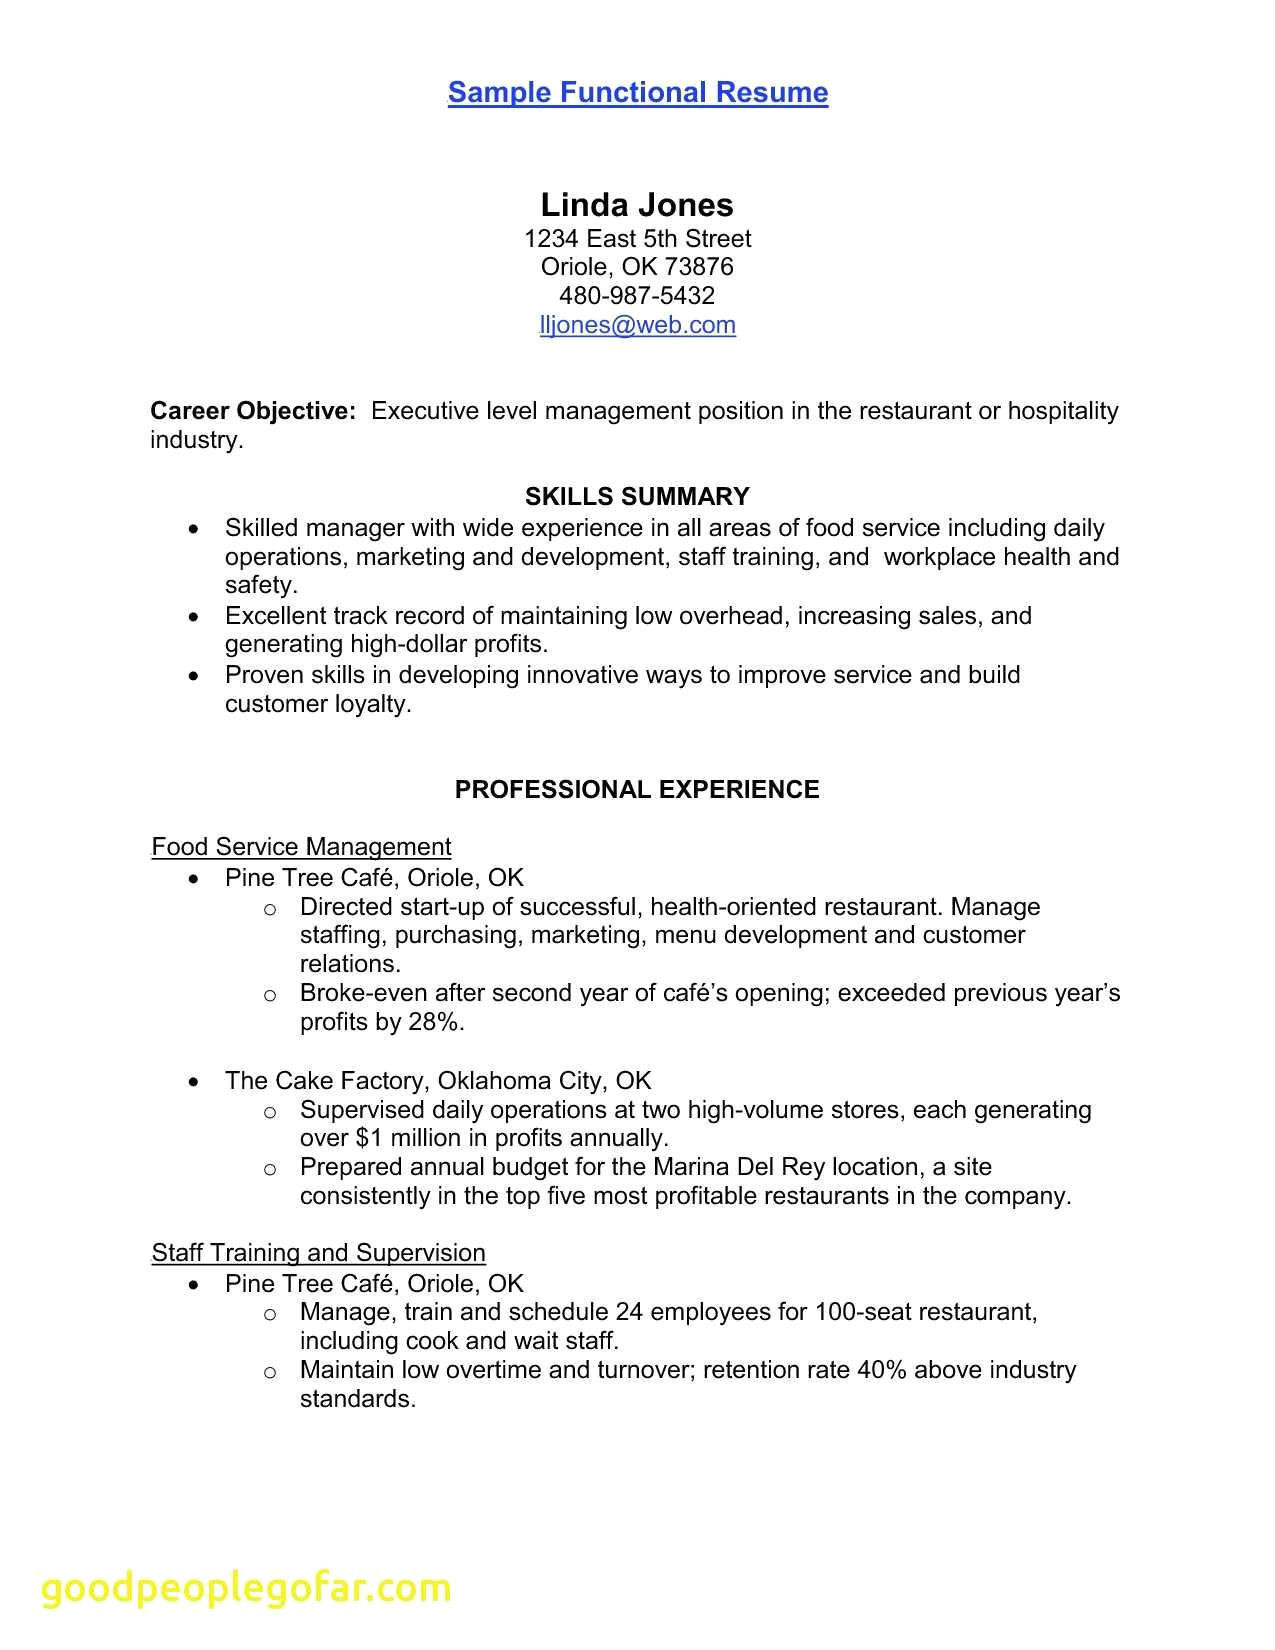 Service Industry Resume Template - Professional Resume Guidelines